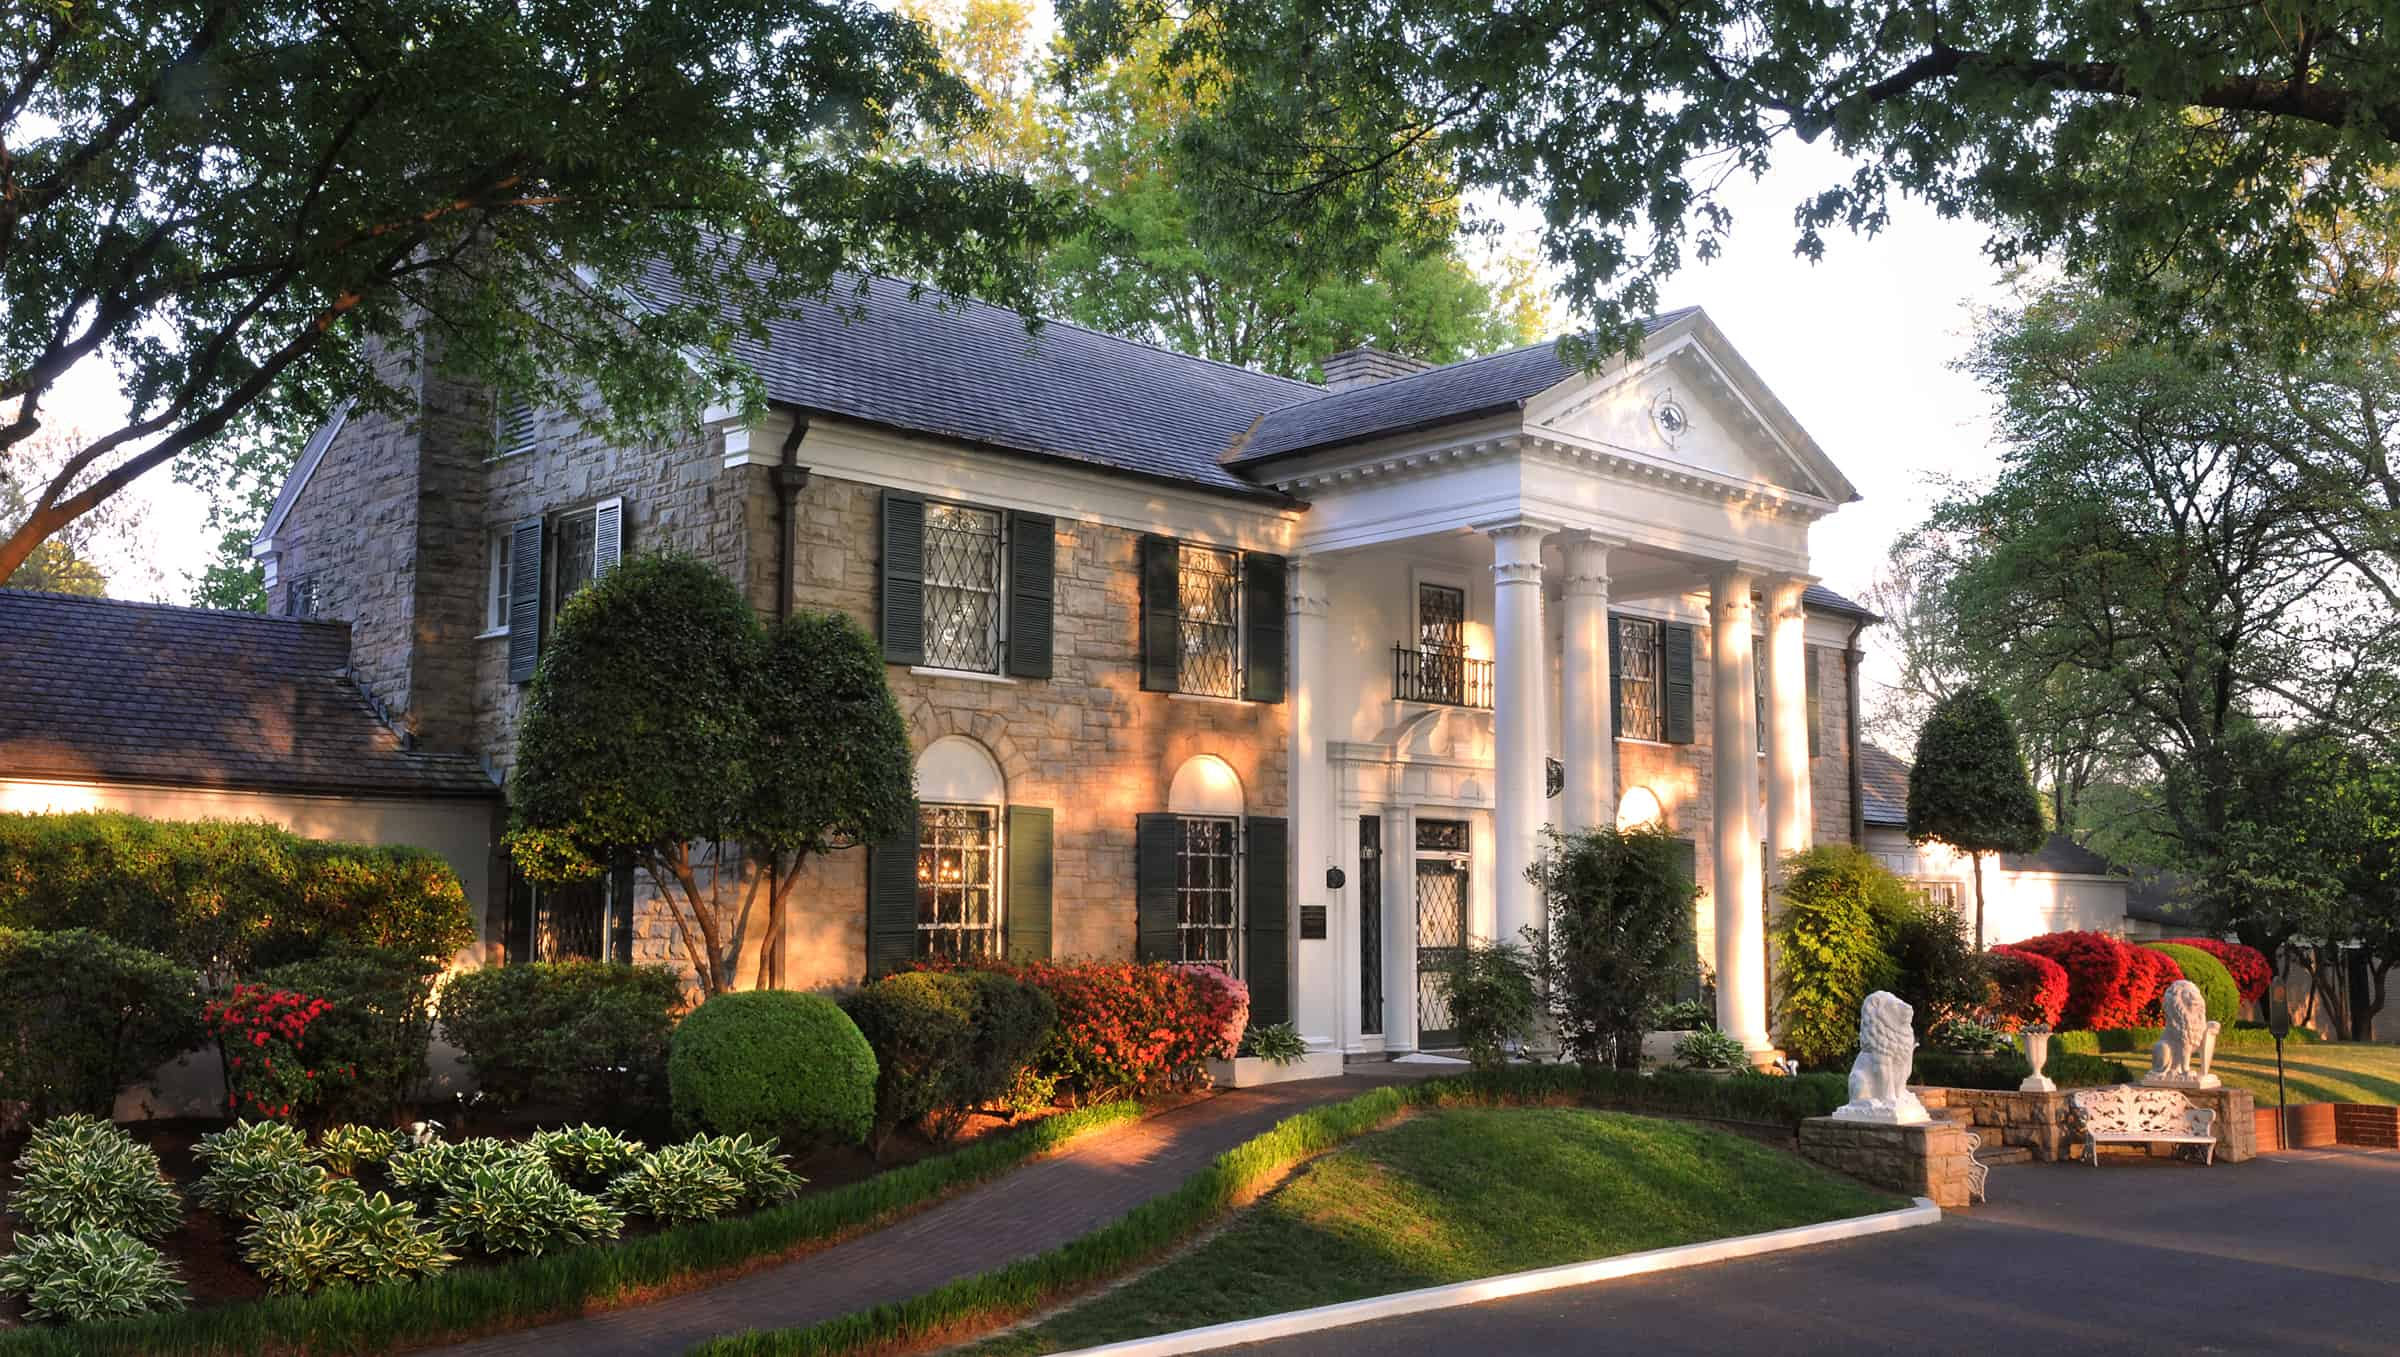 Elvis' Graceland Mansion | Photo courtesy of Elvis Presley Enterprises